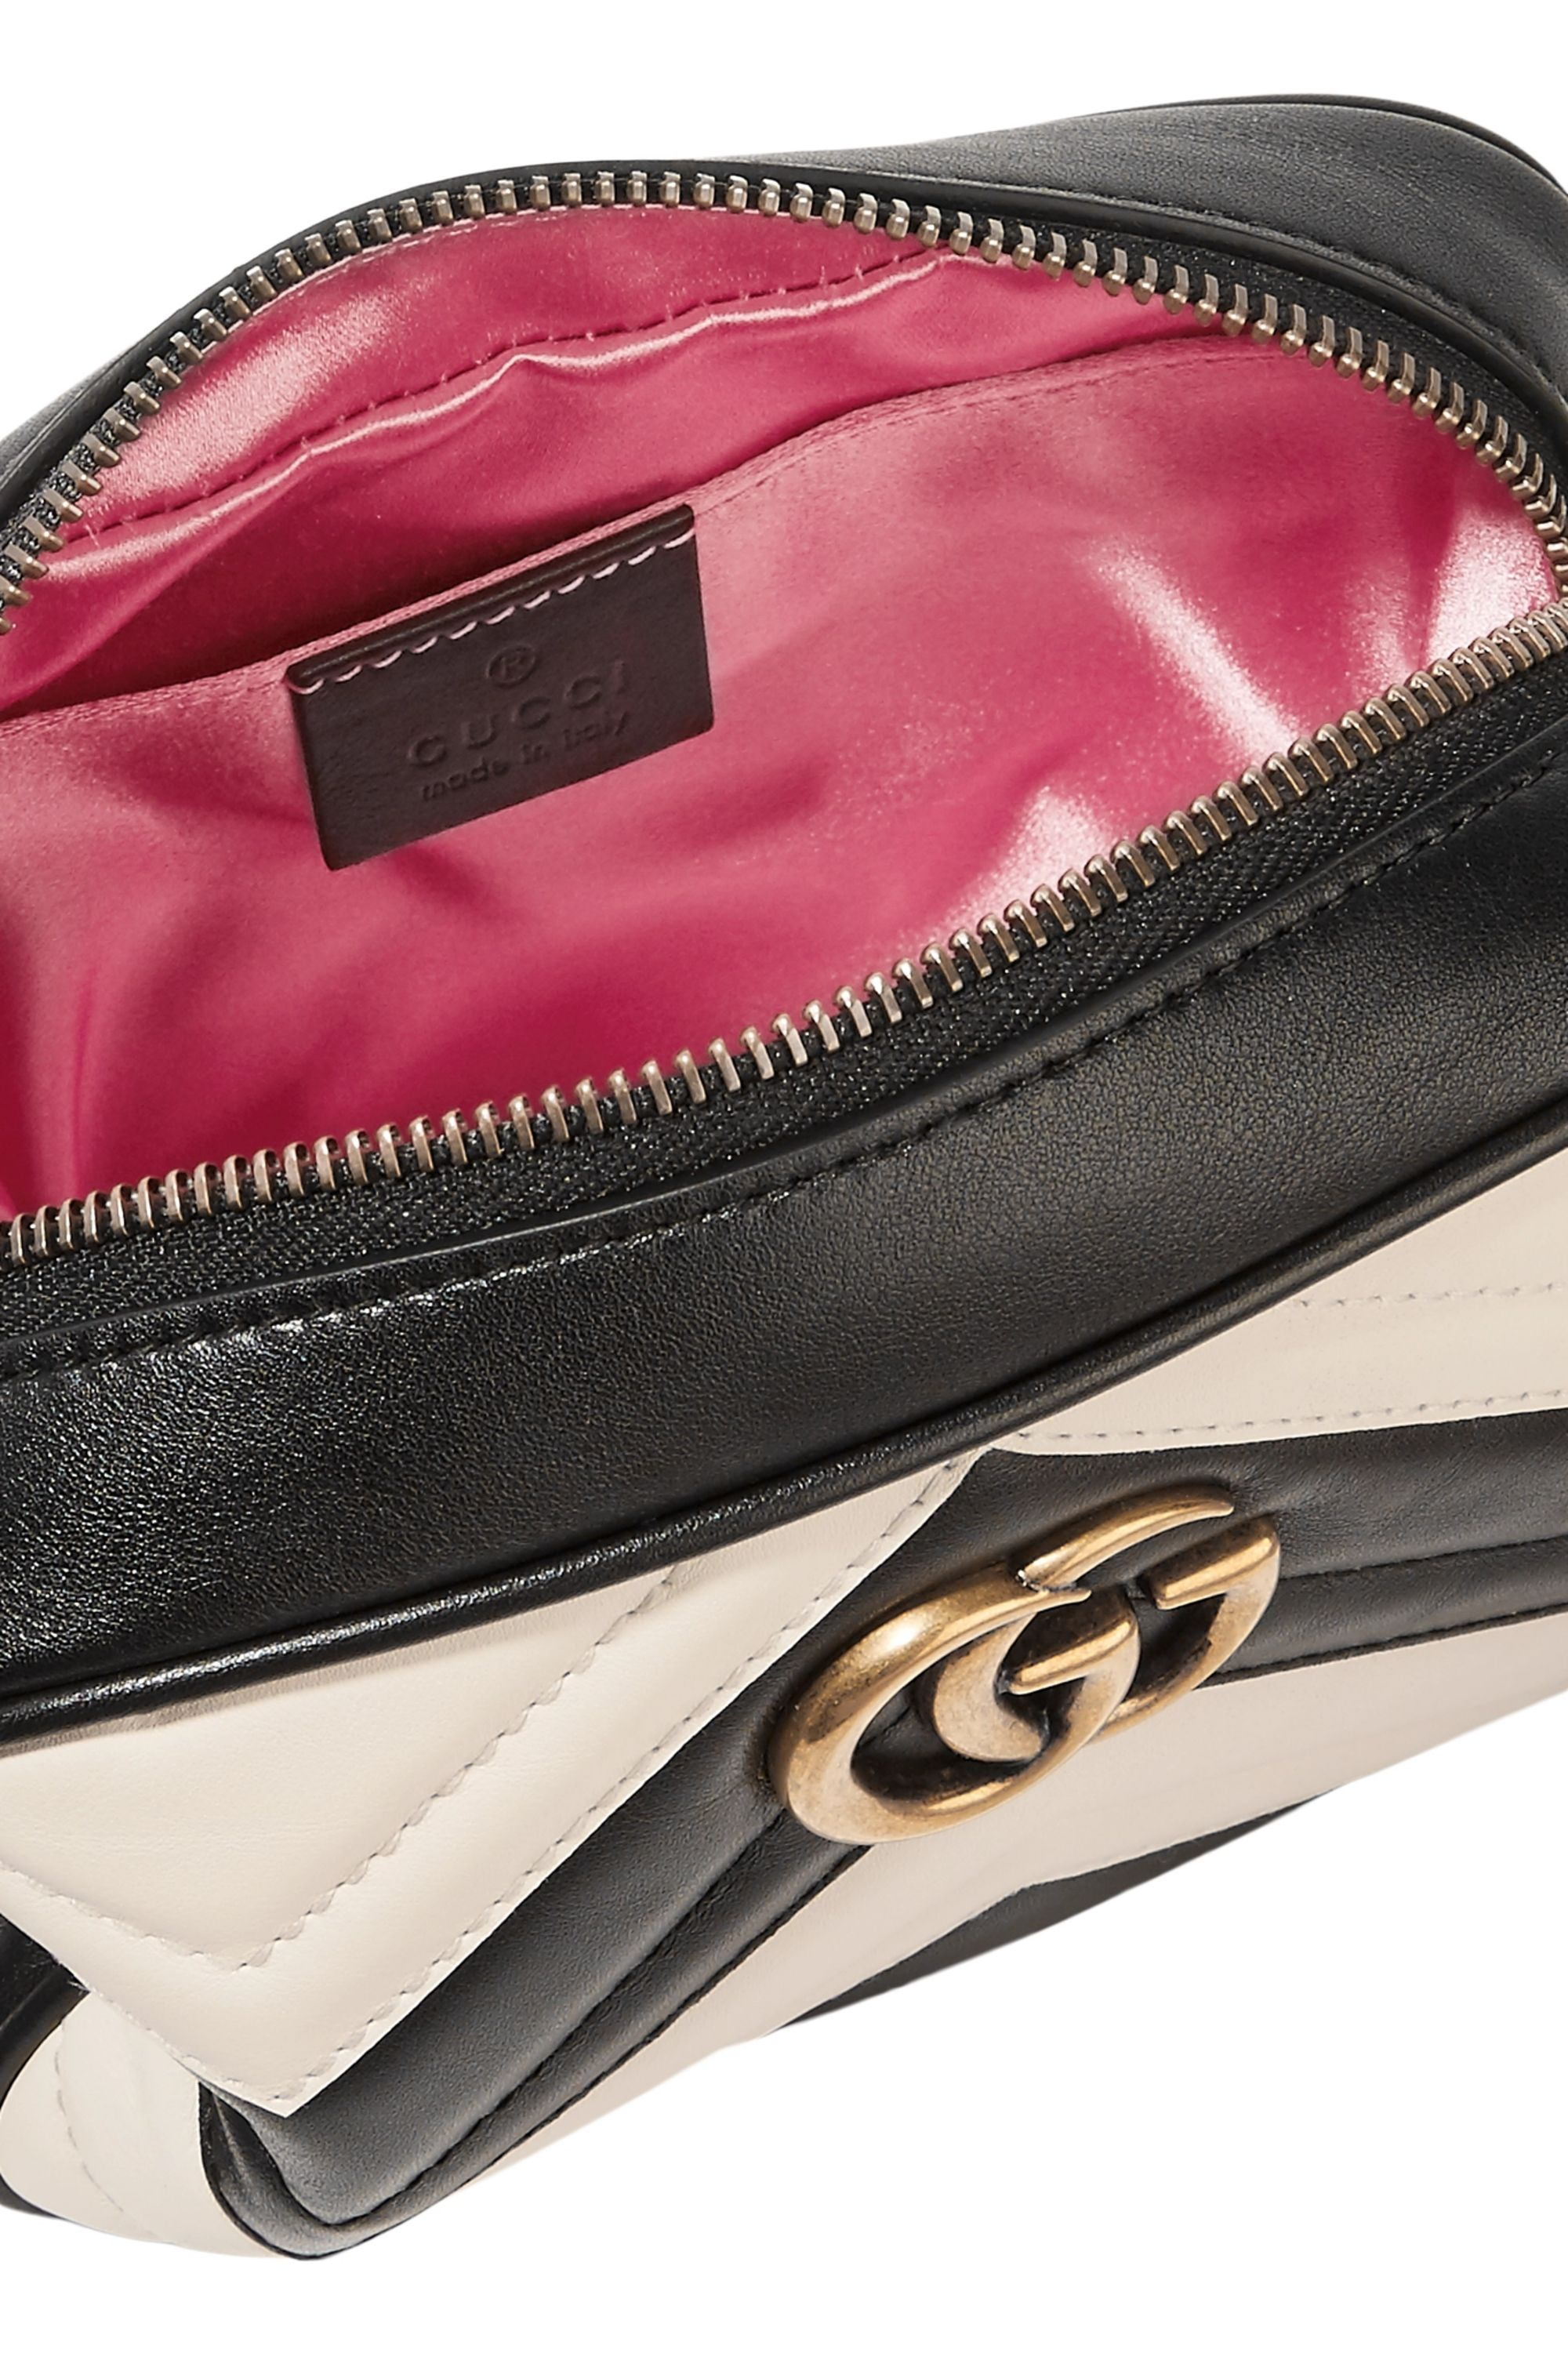 Gucci GG Marmont Camera mini two-tone quilted leather shoulder bag